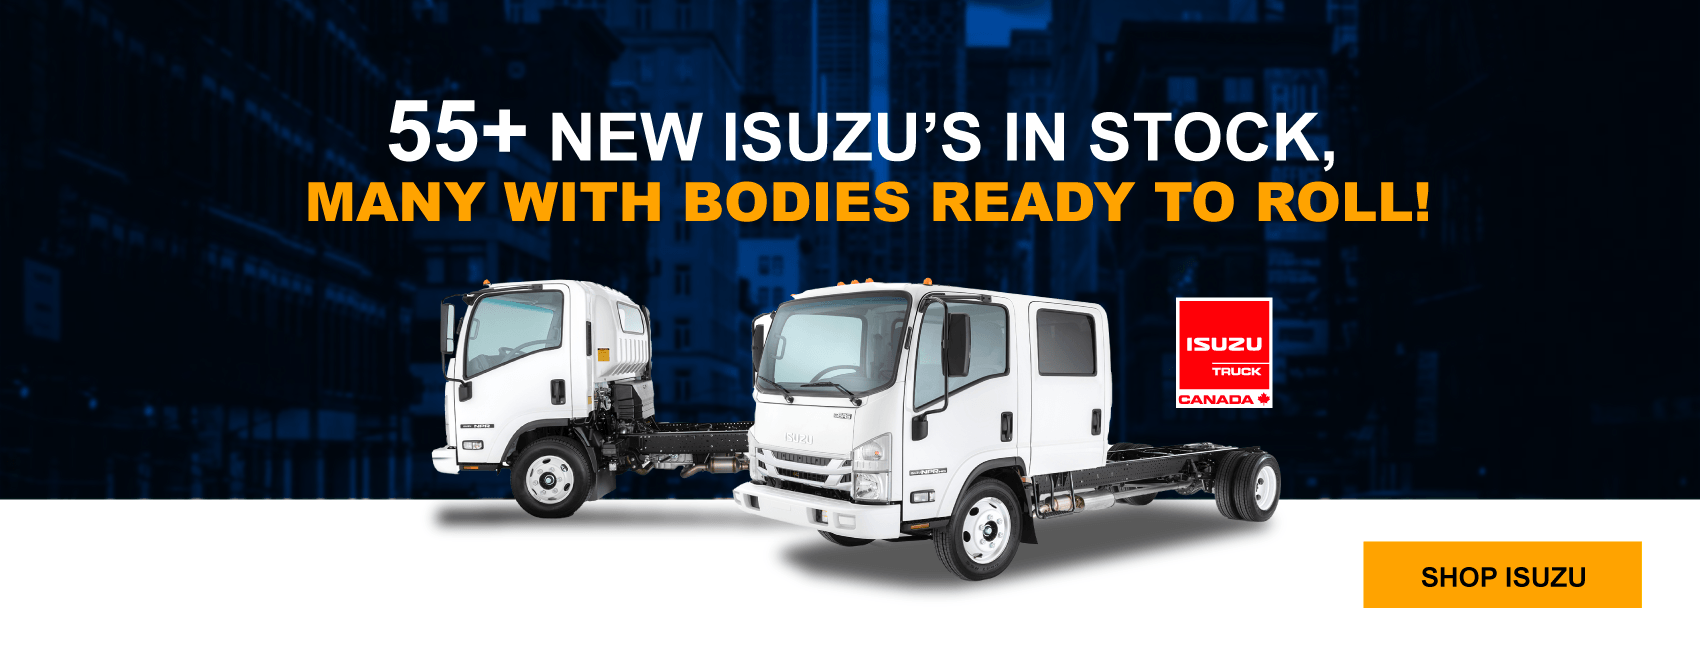 Humberview Trucks Isuzu Truck Dealer Toronto